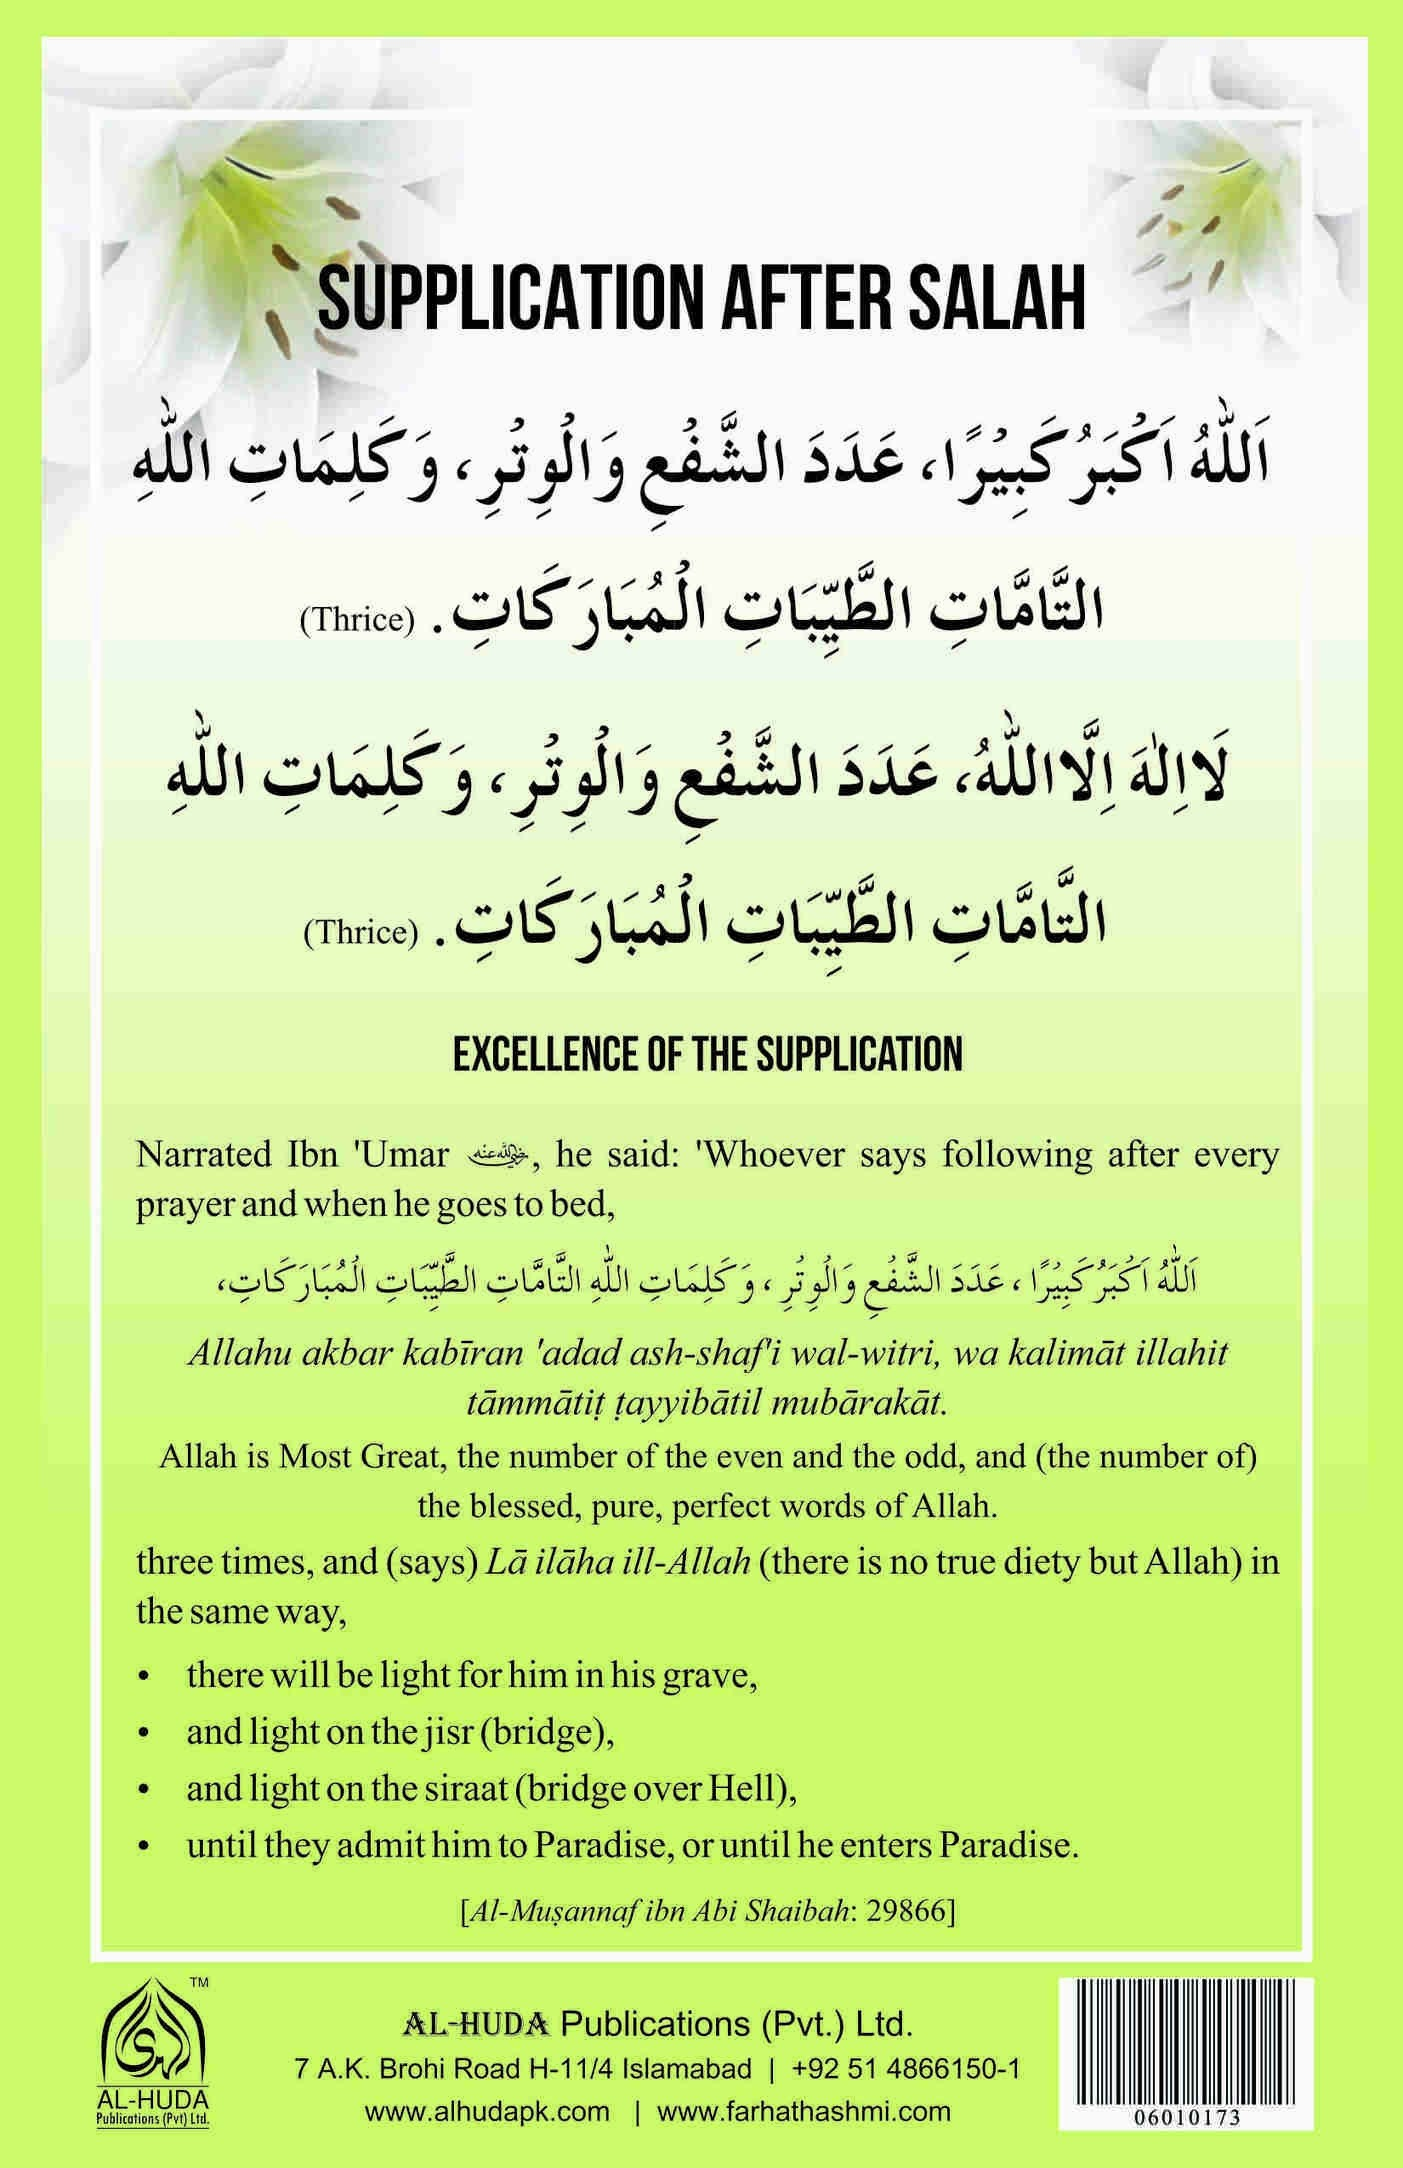 Supplication after salah